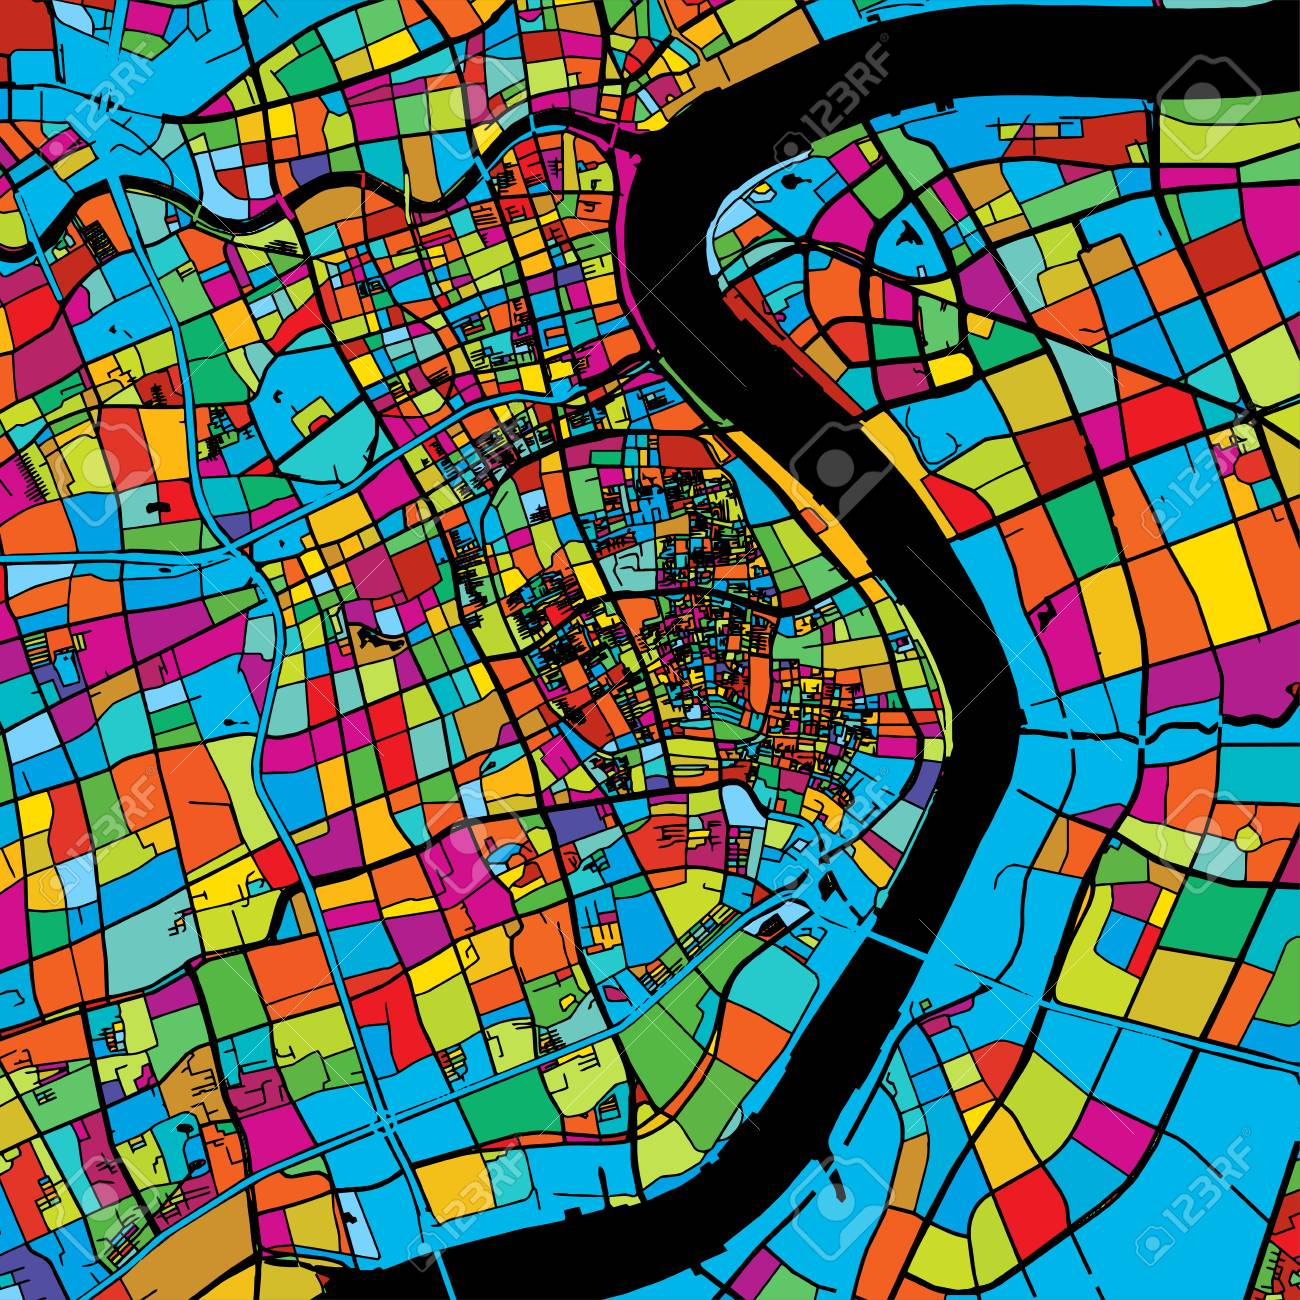 Image of: Shanghai China Colorful Vector Map On Black Printable Outline Royalty Free Cliparts Vectors And Stock Illustration Image 74220804